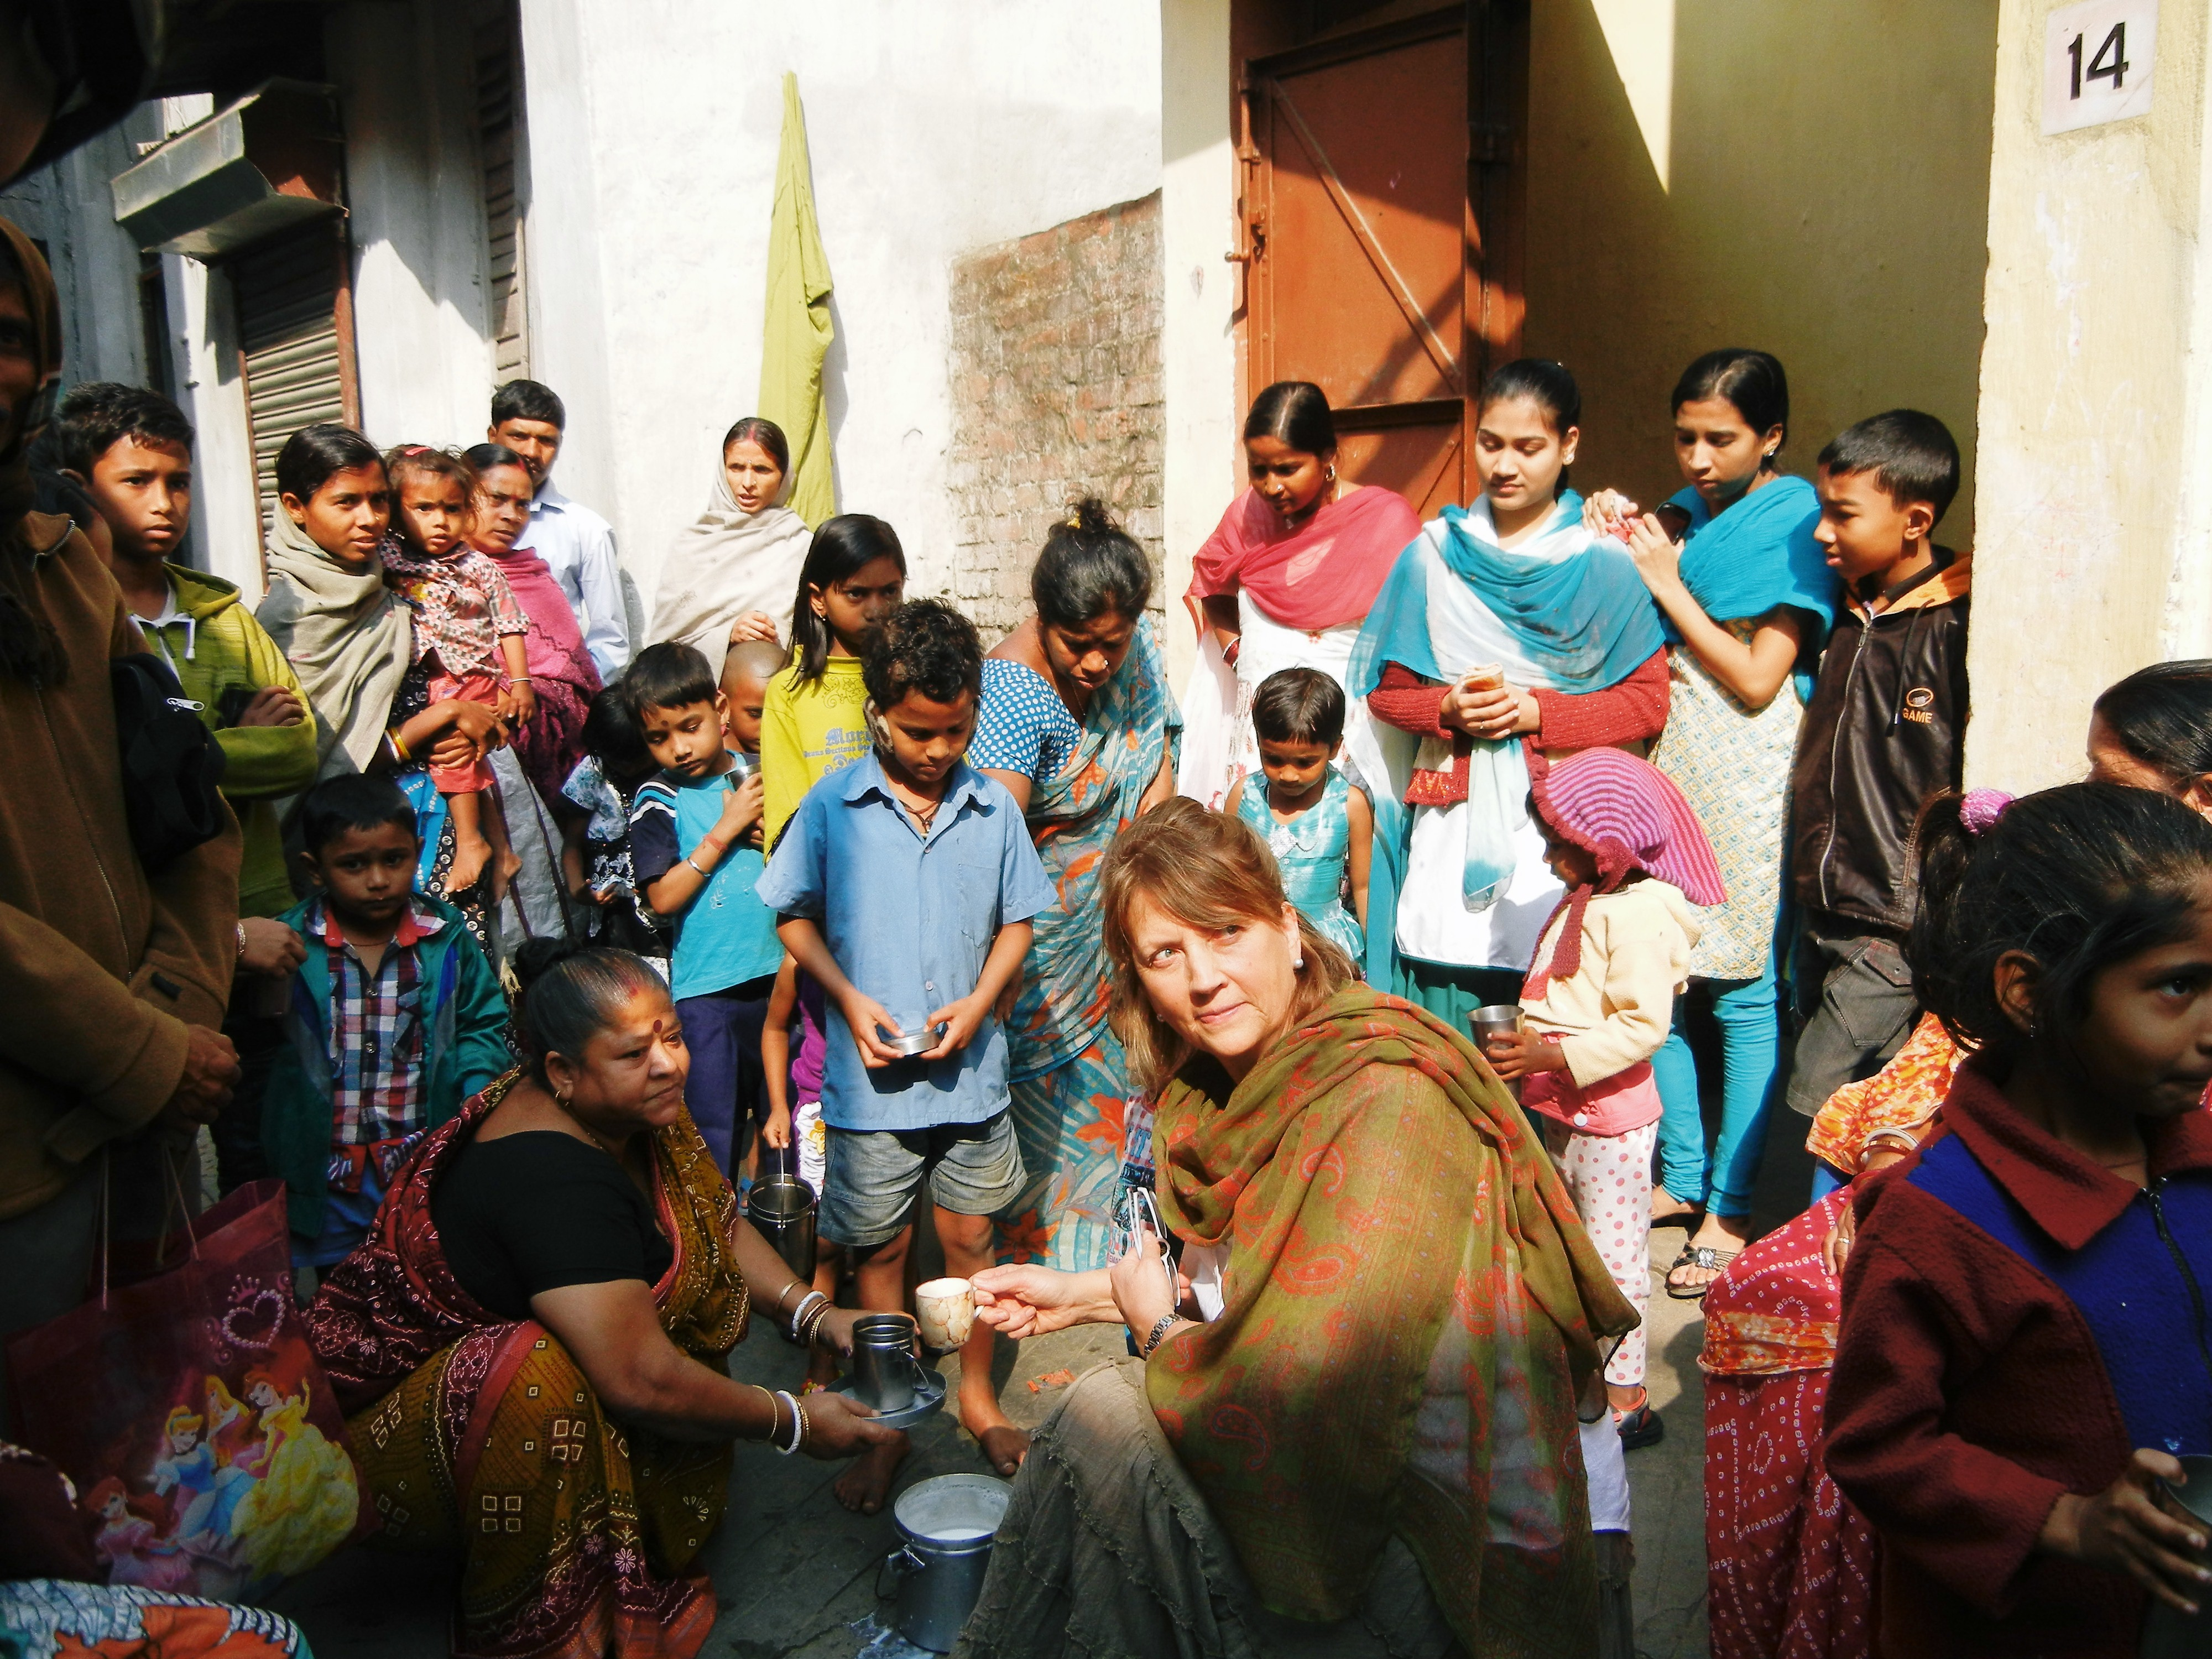 Milk distribution in the slum